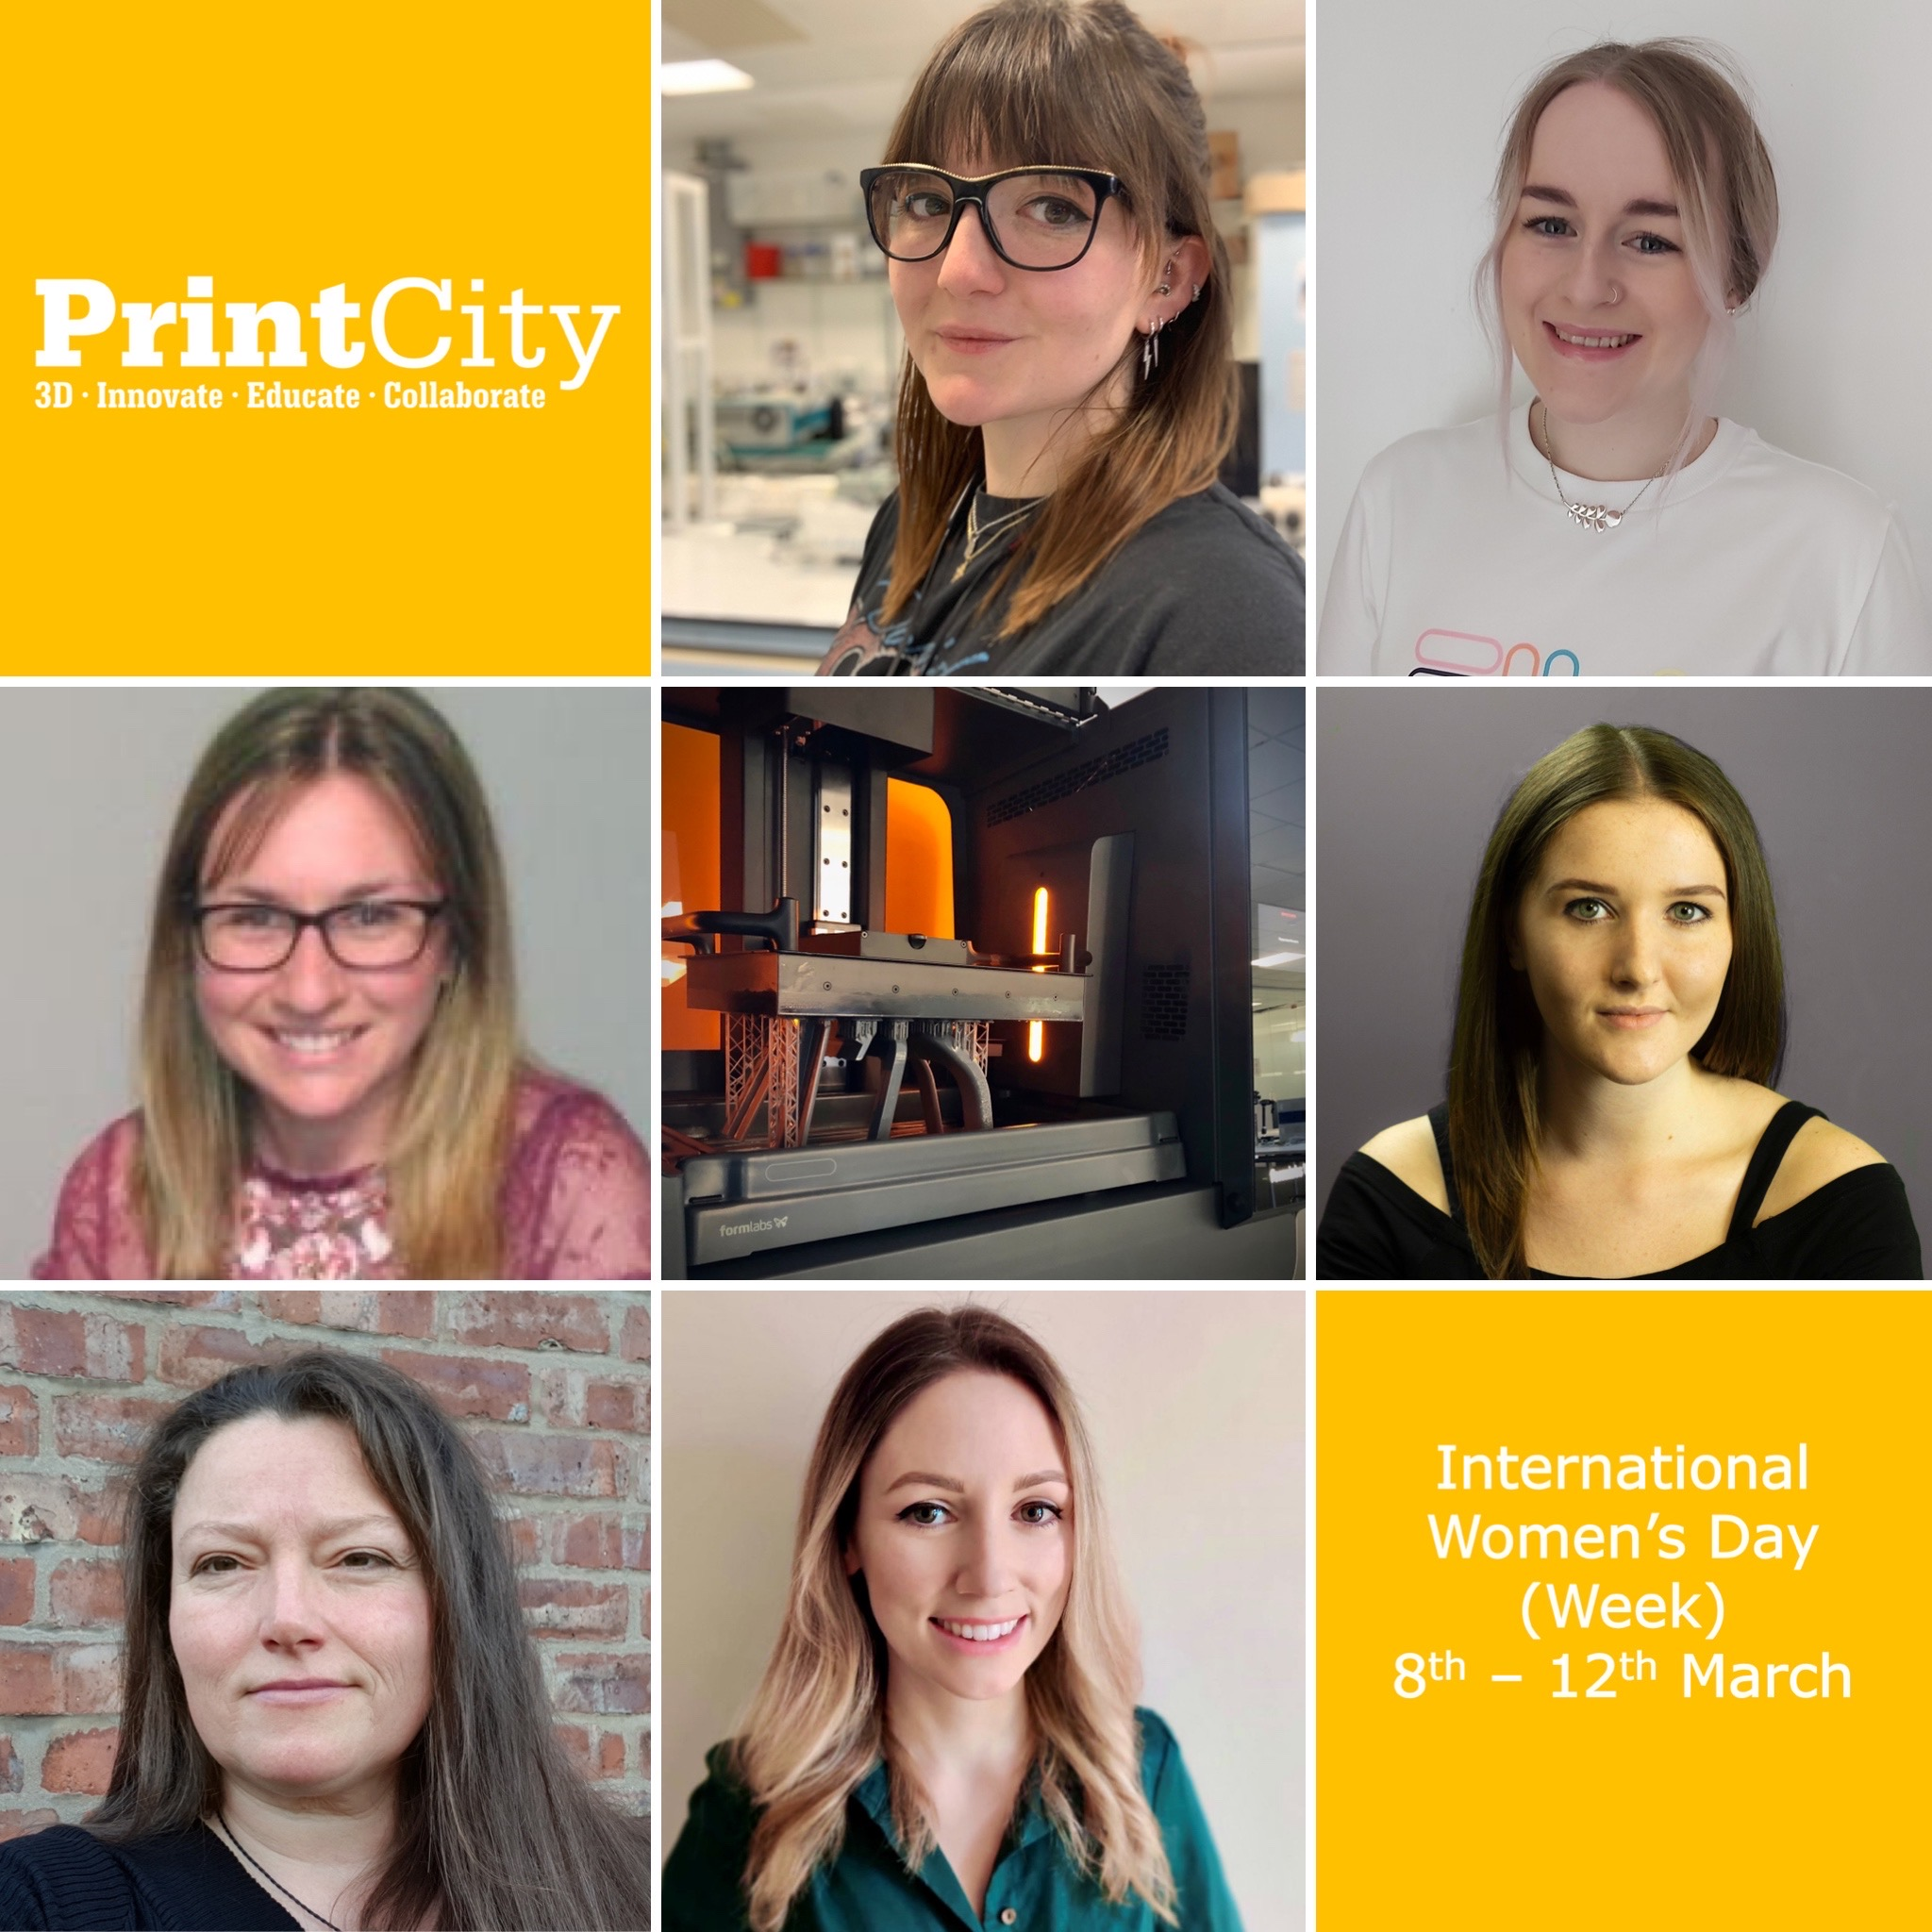 PrintCity Round Up - March 2021 - The PrintCity Blog - Manchester Metropolitan University